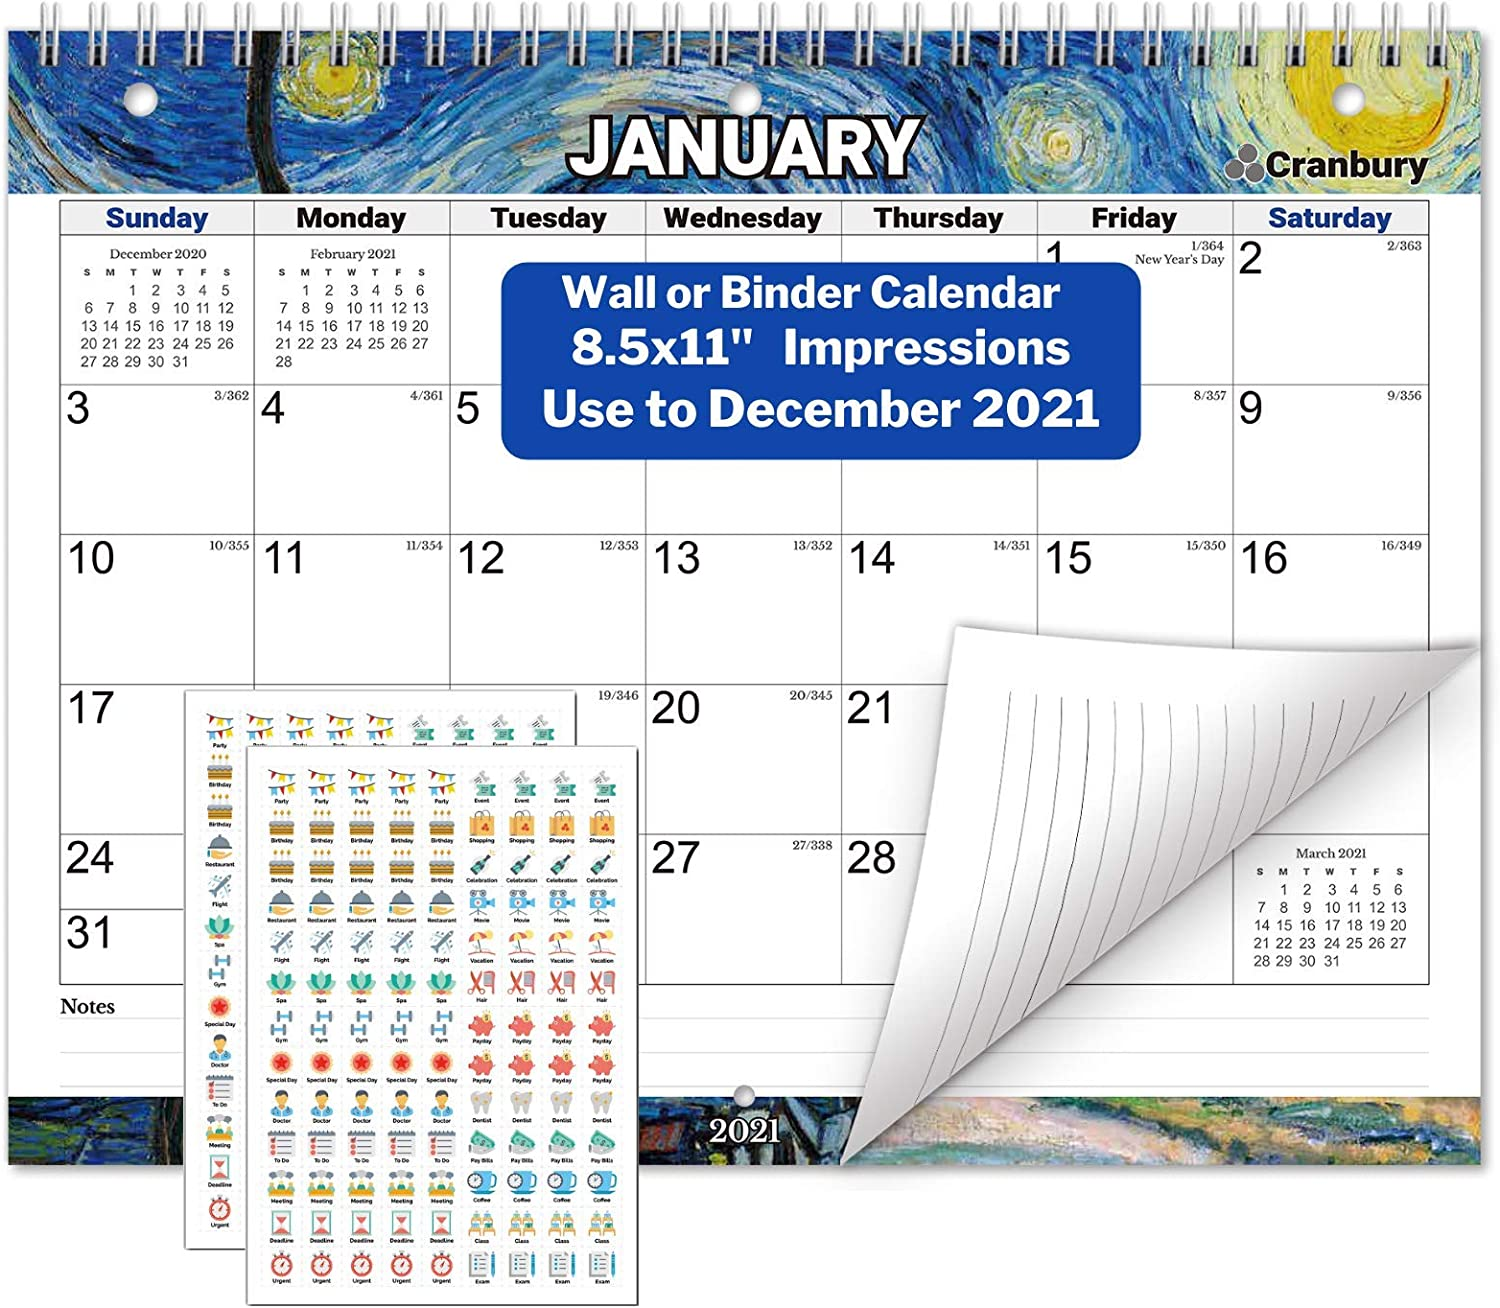 CRANBURY Small Wall Calendar 2020-2021 - (Impressions) Monthly Calendar for 3-Ring Binder, Desk or Wall, 8.5x11 Inches, Use to December 2021, School Year Academic Calendar, Includes Planner Stickers